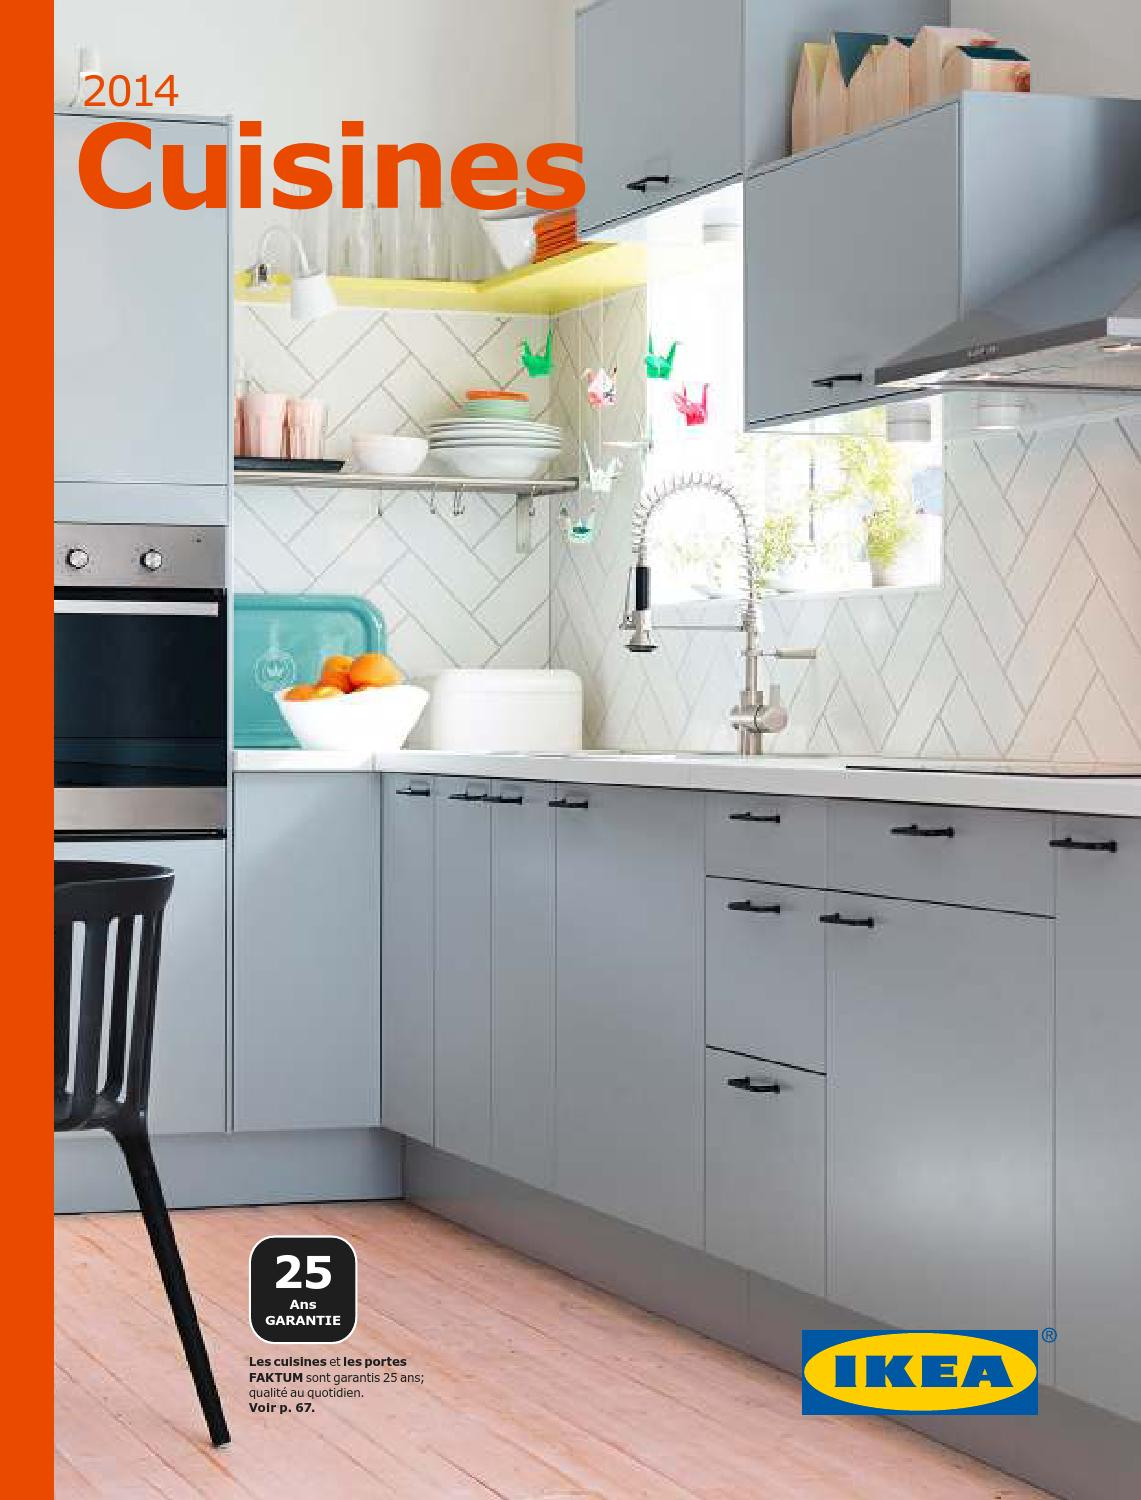 catalogue ikea cuisine 2014 fr complete by adclick bvba. Black Bedroom Furniture Sets. Home Design Ideas